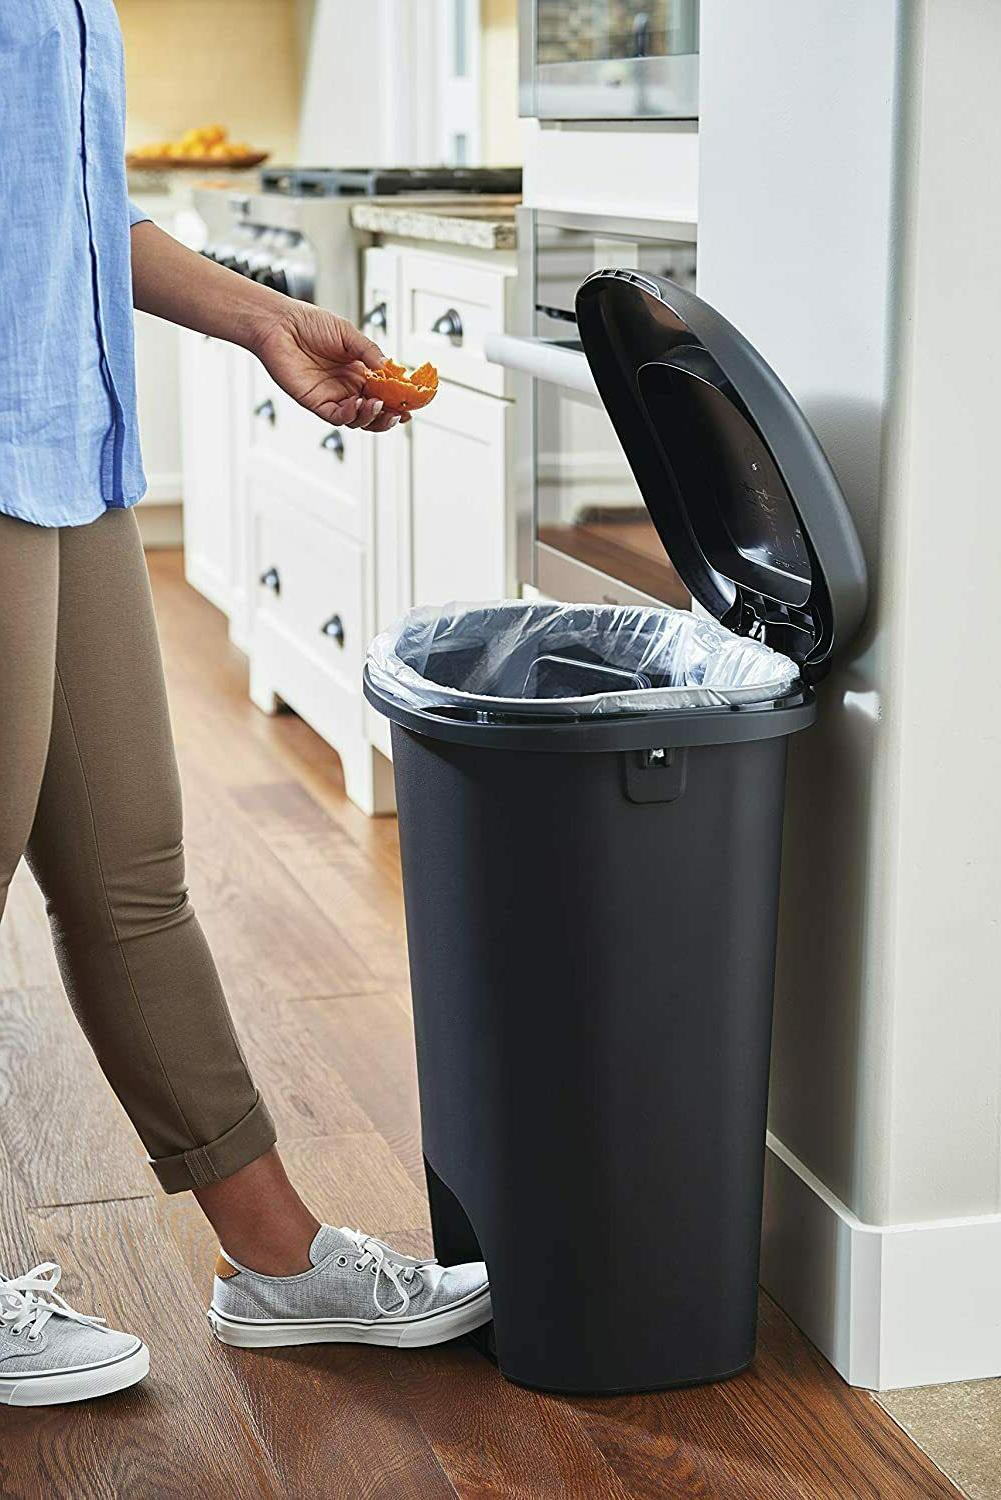 Rubbermaid Step-On Lid Trash Can for Home Kitchen and Bathro